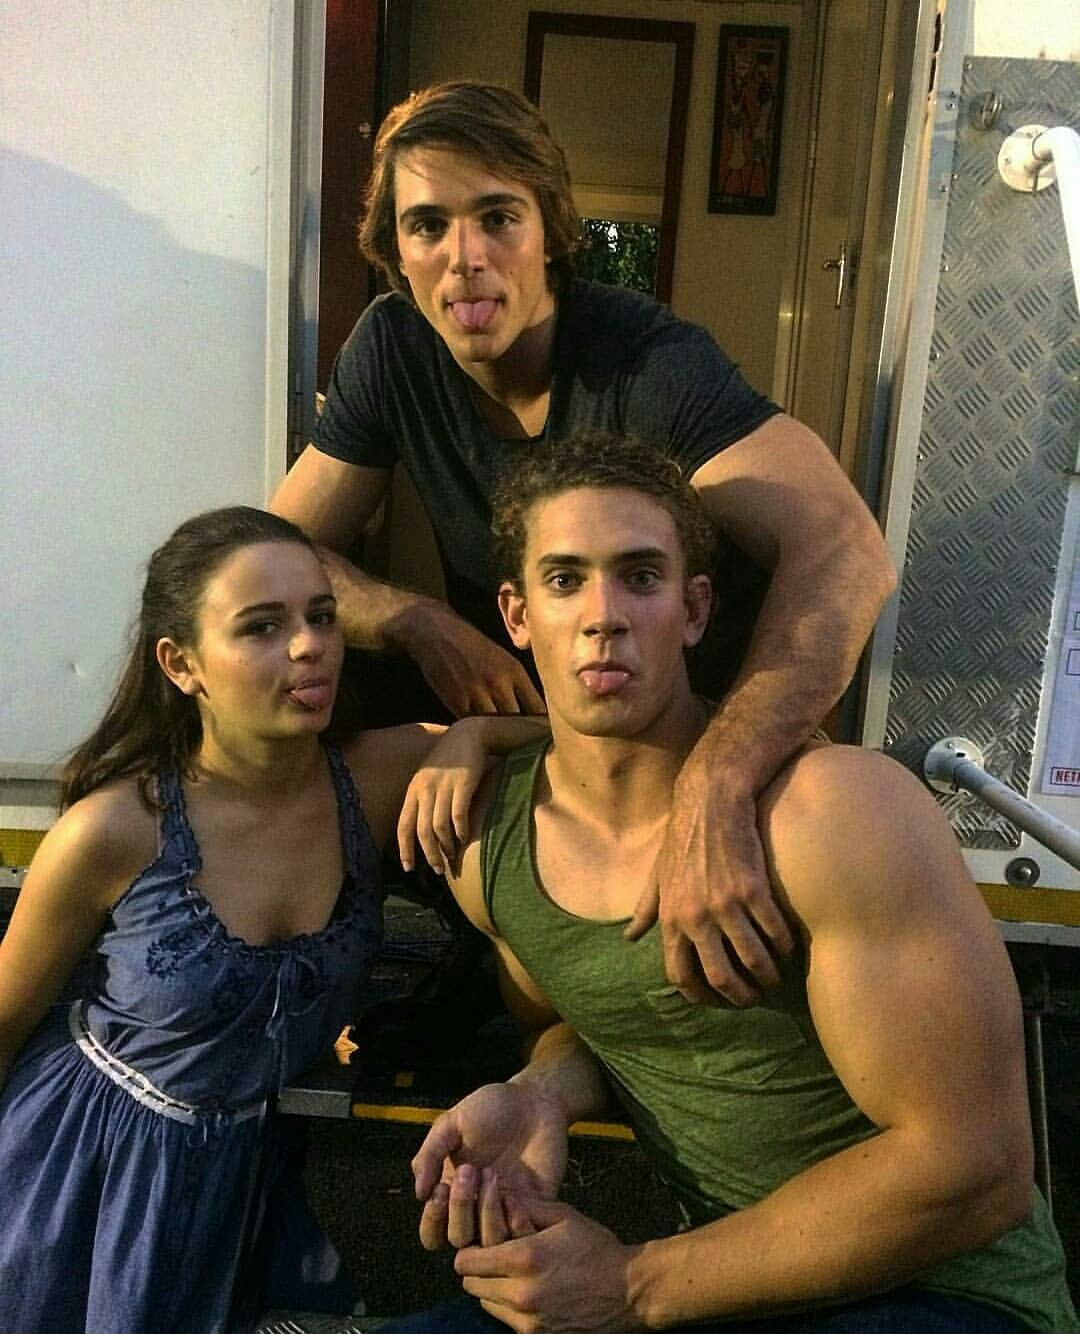 Jacob Elordi, Joey King and Joshua Eady | Men I'd Go